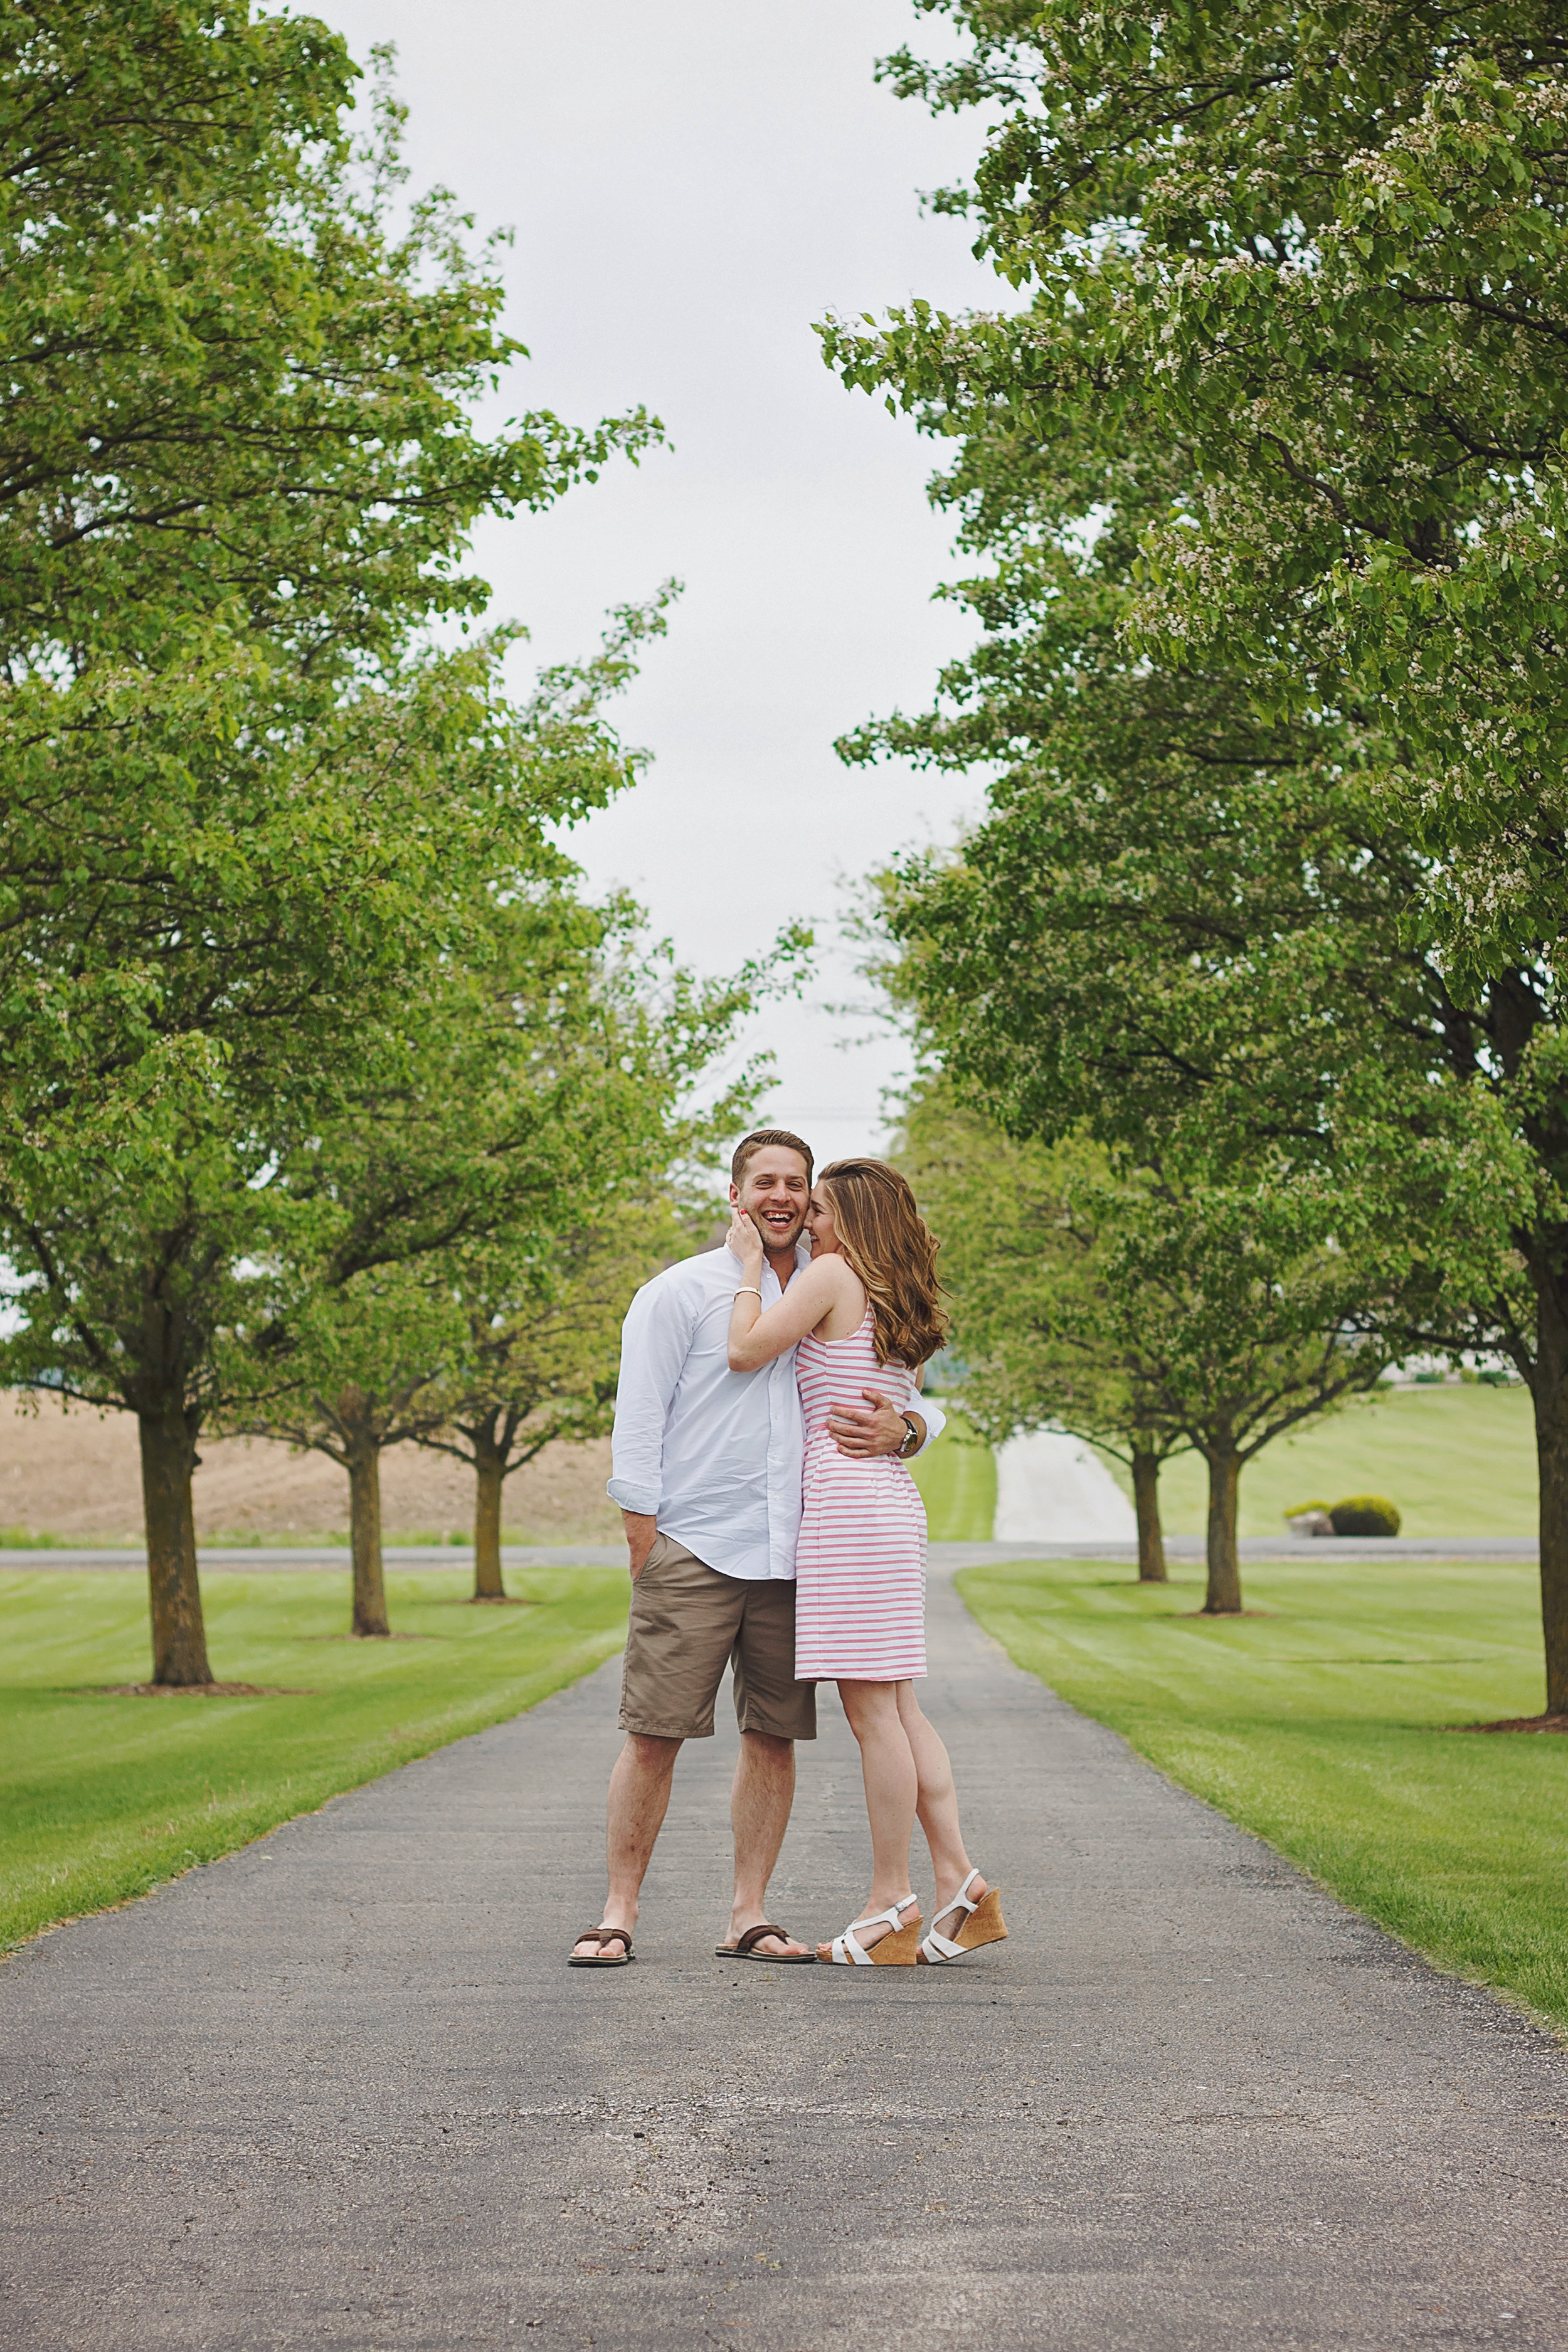 Mishawaka engagement session, family farm, pink dress, lane of trees